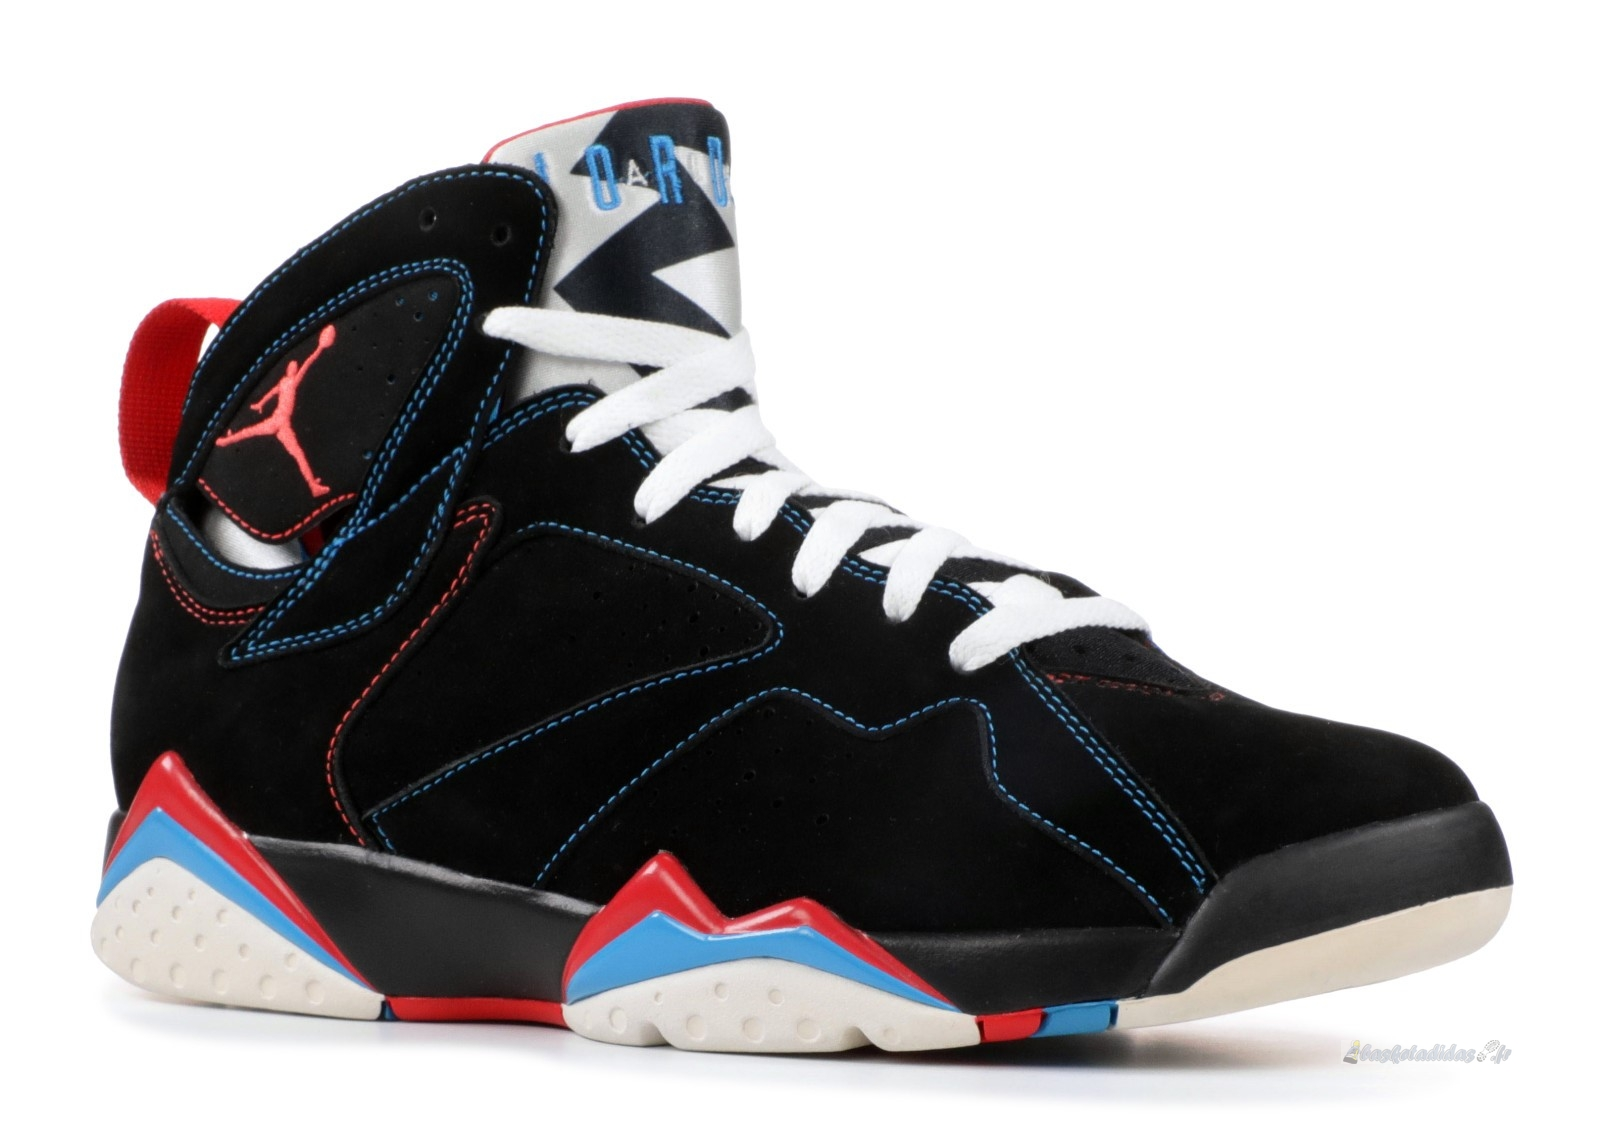 "Chaussure de Basket Air Jordan 7 Retro ""Reverse Orion Sample"" Noir (sp11mjdls761187737)"